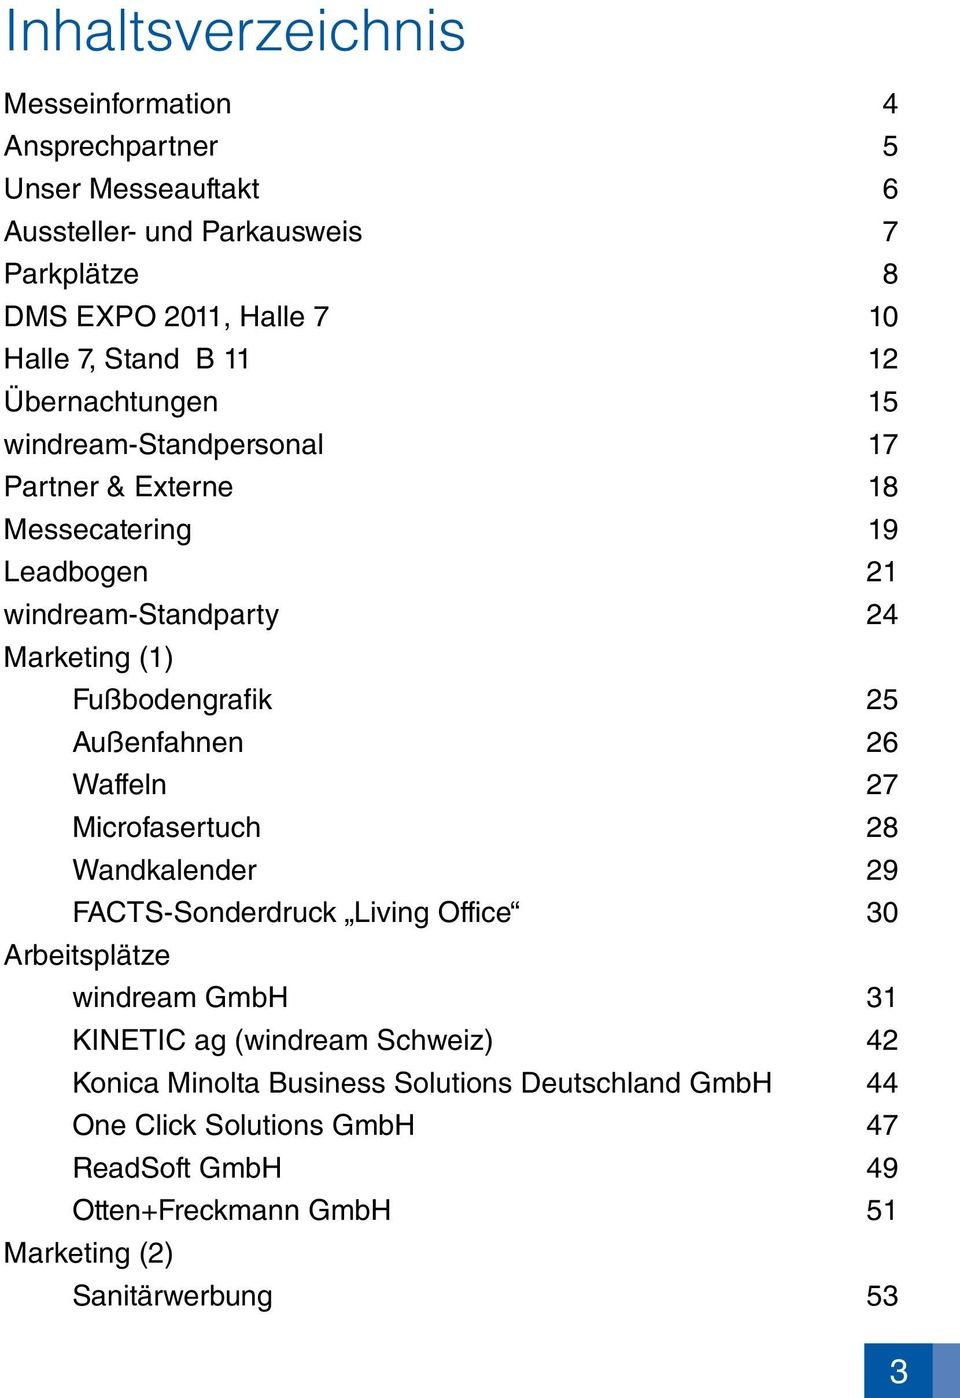 Fußbodengrafik 25 Außenfahnen 26 Waffeln 27 Microfasertuch 28 Wandkalender 29 FACTS-Sonderdruck Living Office 30 Arbeitsplätze windream GmbH 31 KINETIC ag